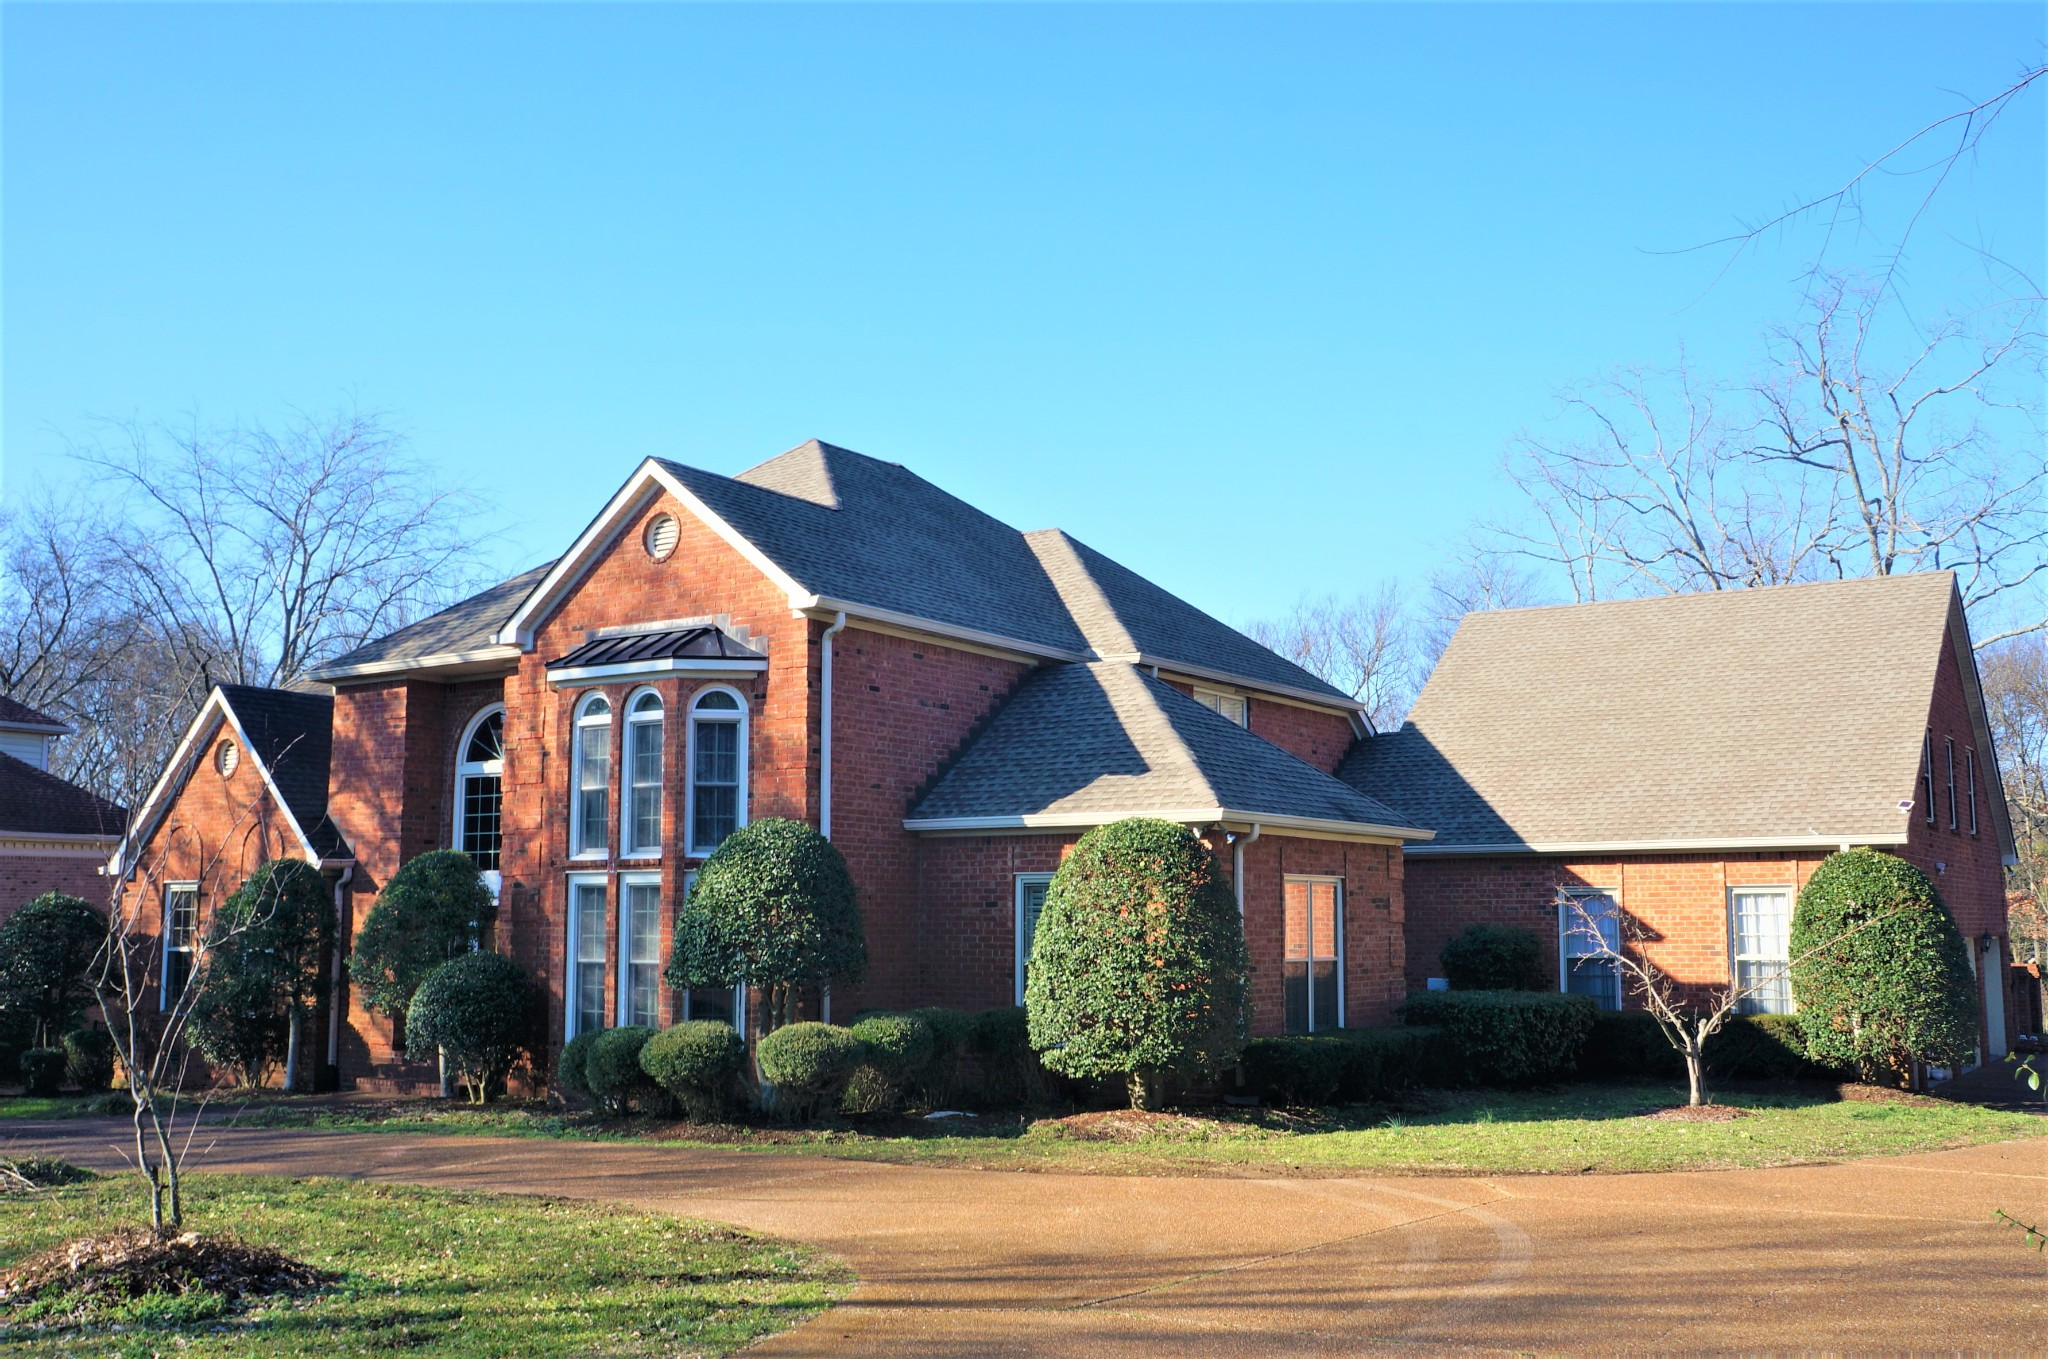 9108 Concord Rd, Brentwood, TN 37027 - Brentwood, TN real estate listing